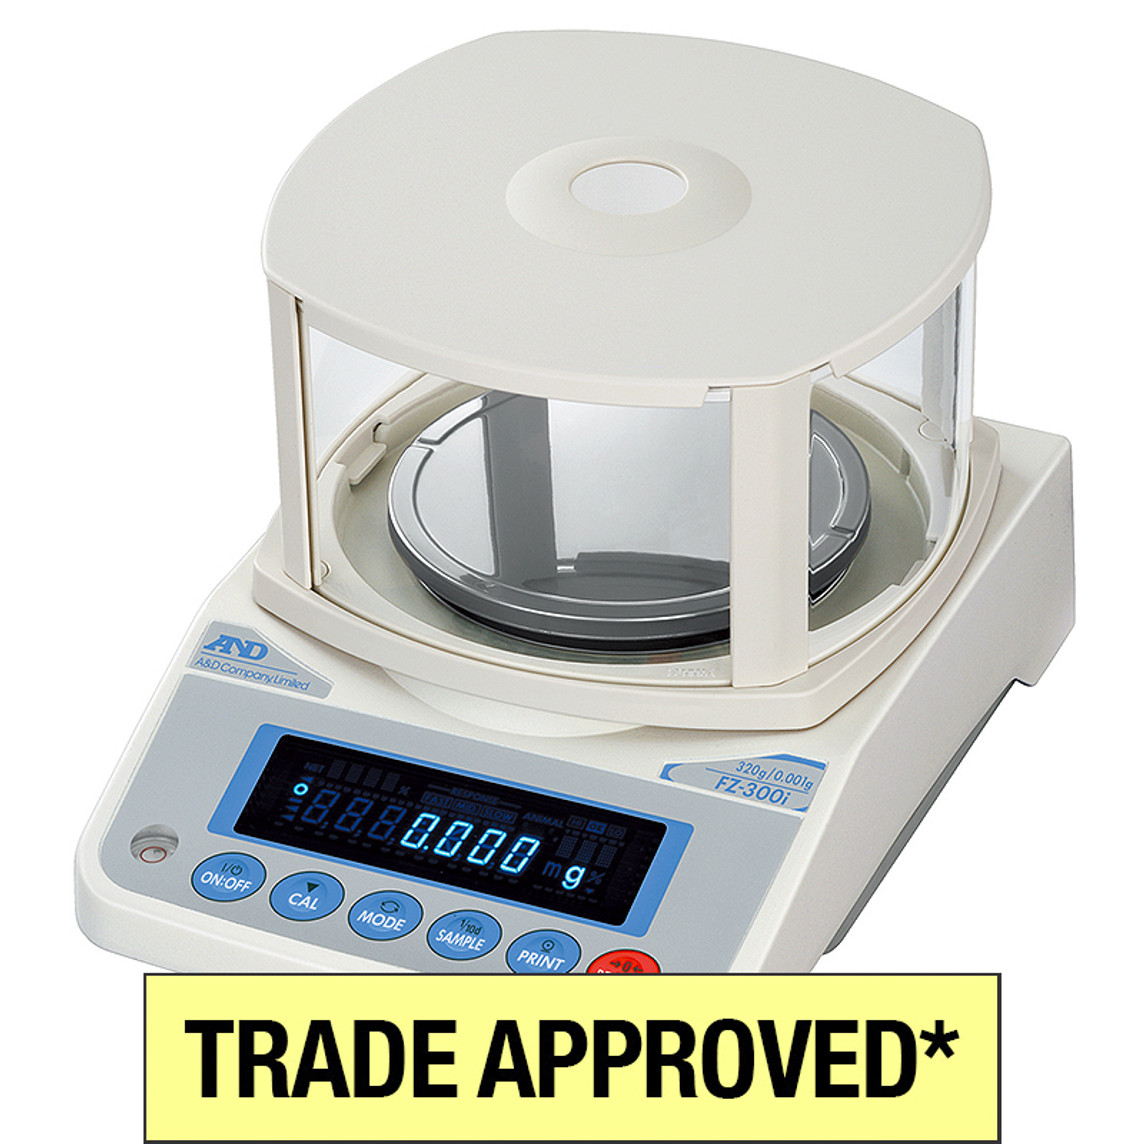 A&D FZ-i Trade Approved Balance